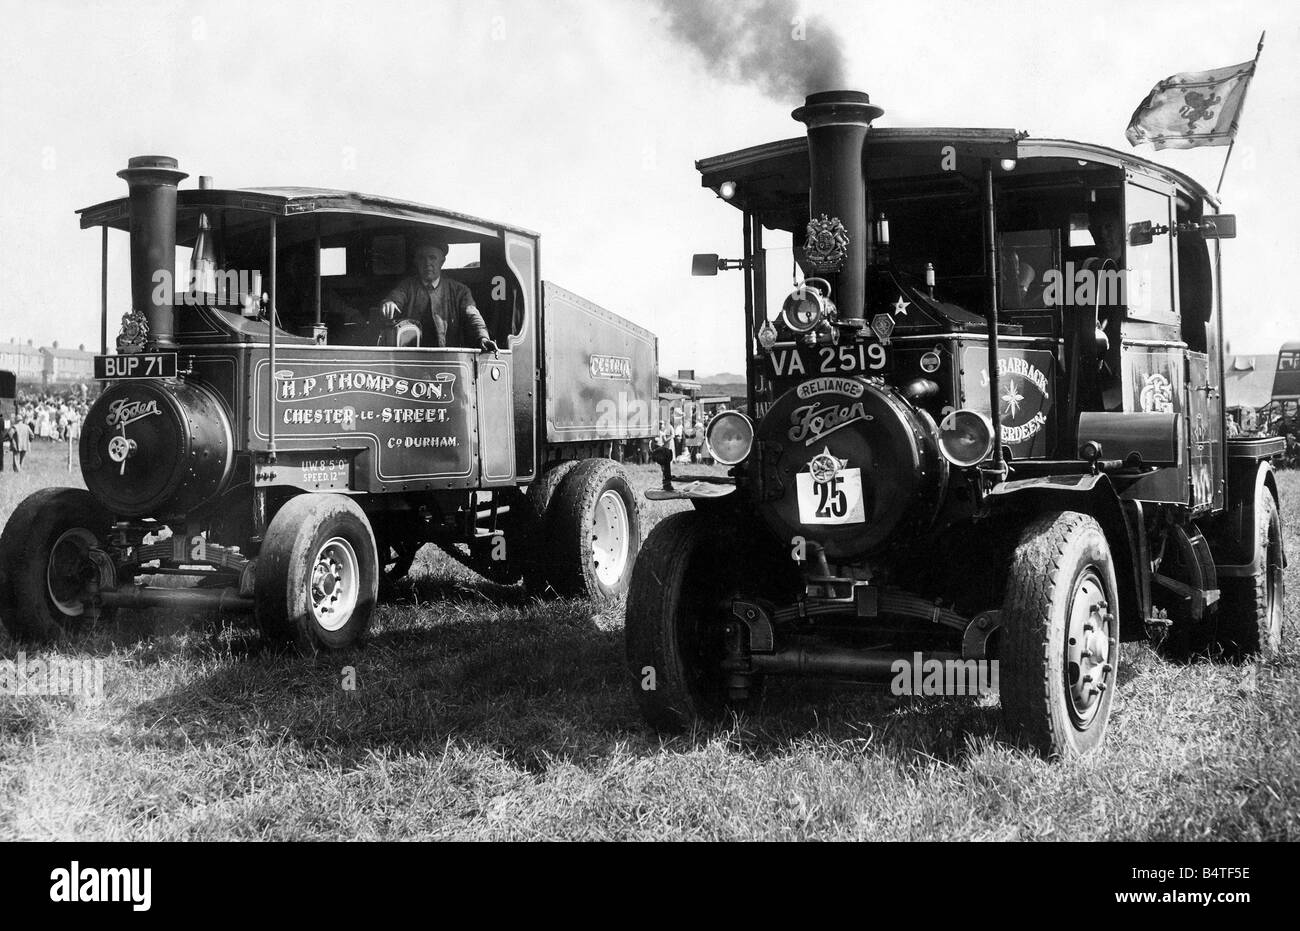 Tractors race at a rally as they are no longer used on a farm - Stock Image